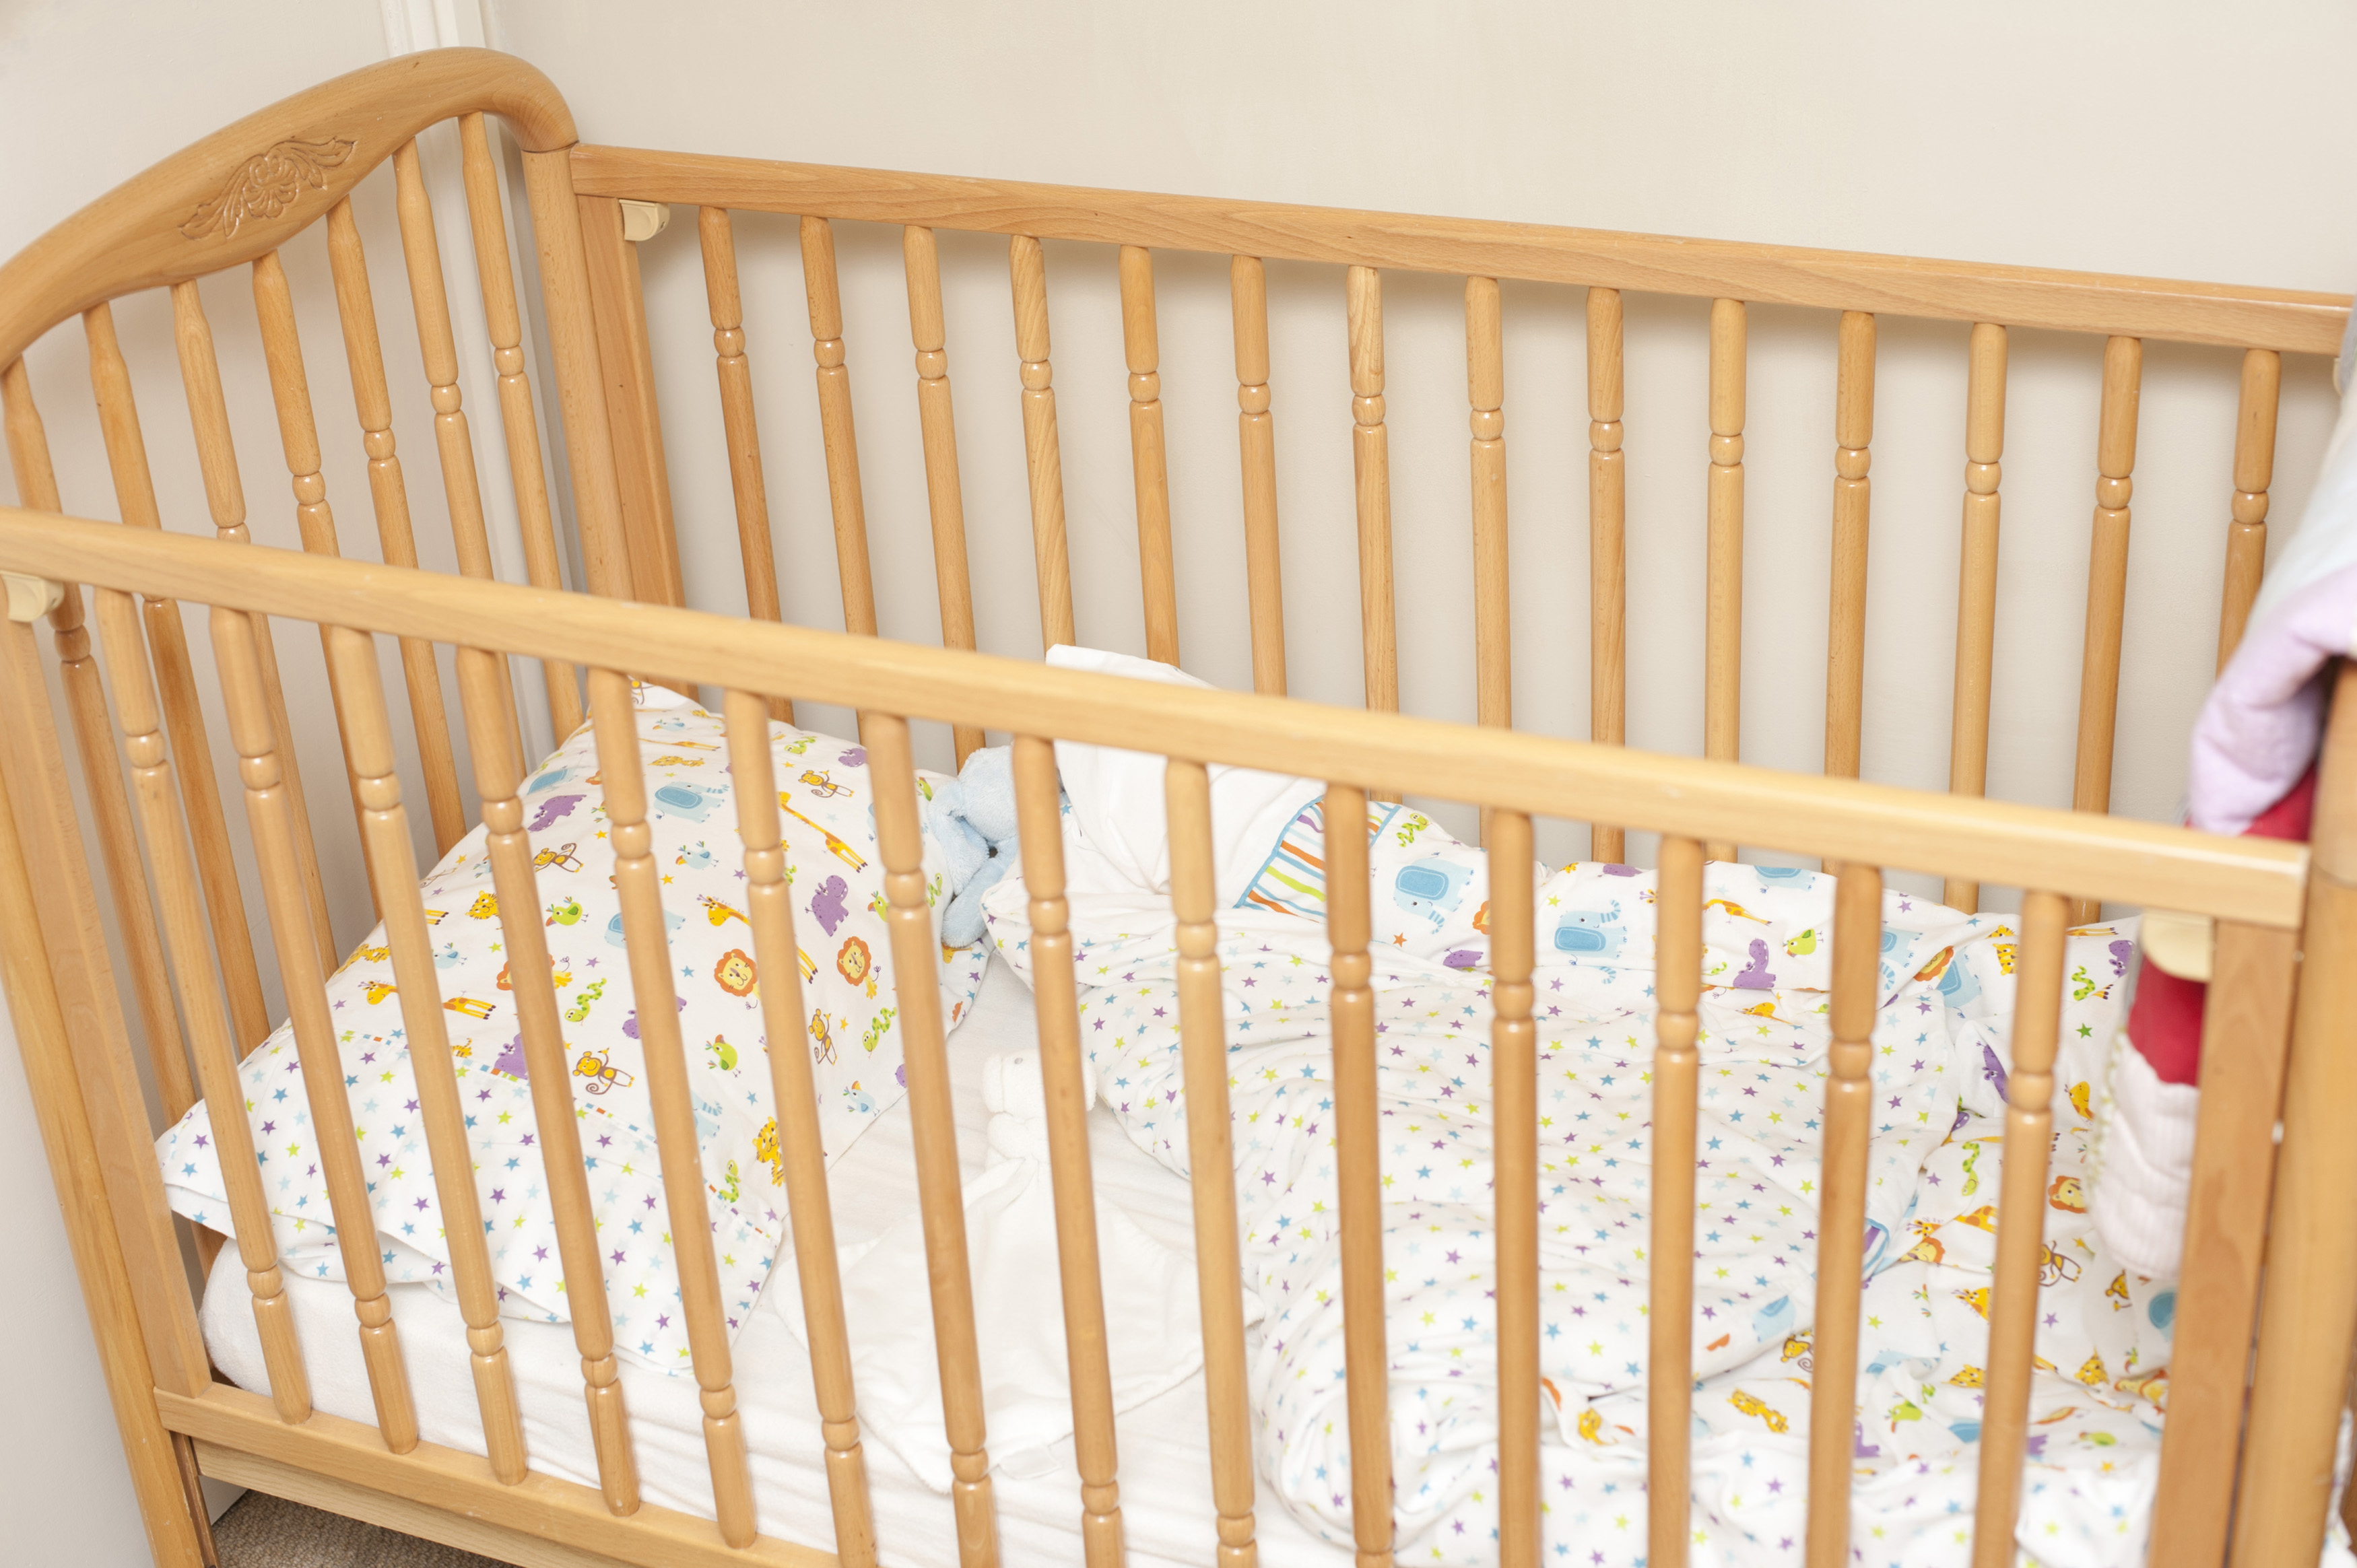 Baby cribs for free - Cut Paste Code